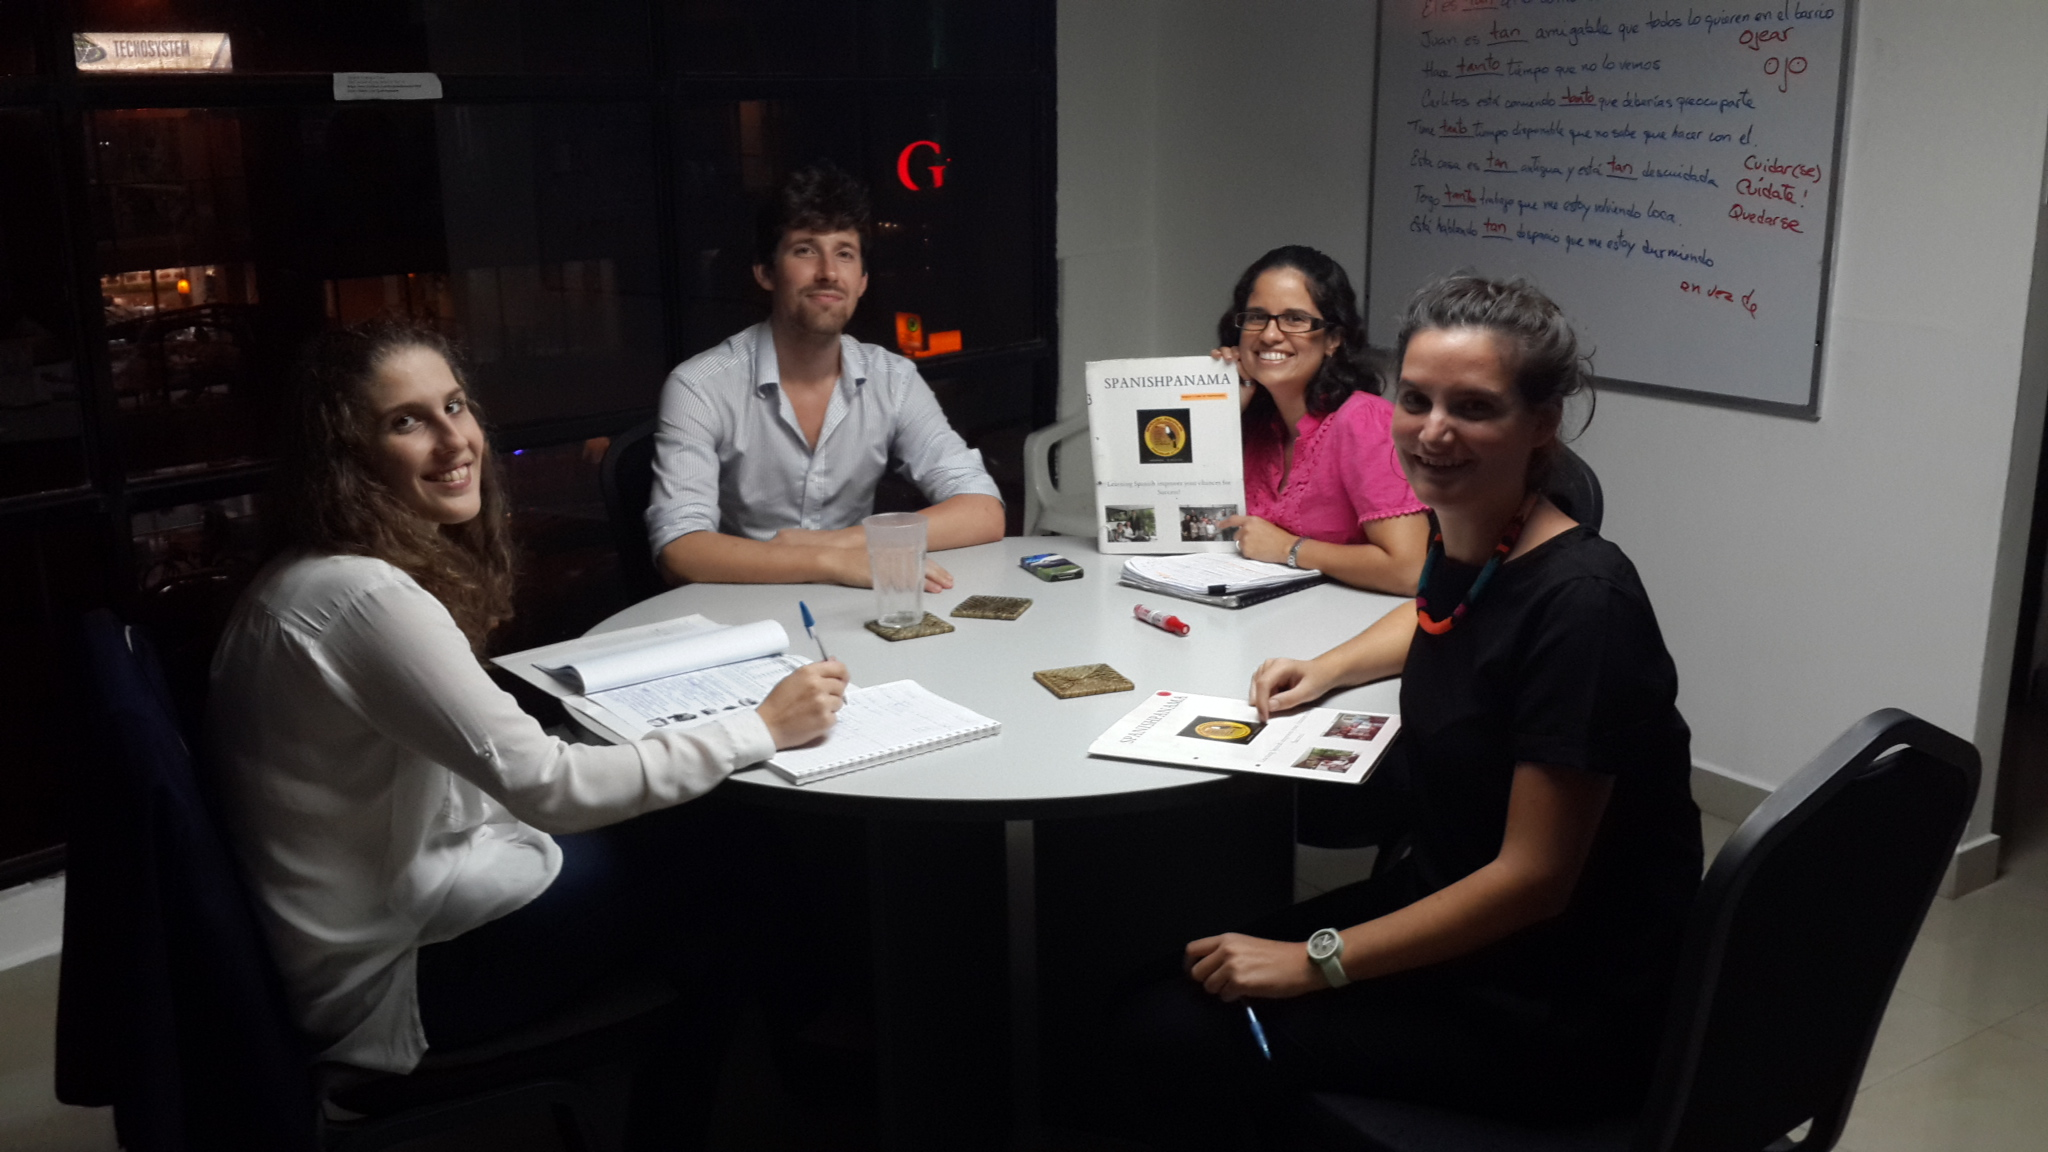 Group Spanish classes morning, afternoon, or night